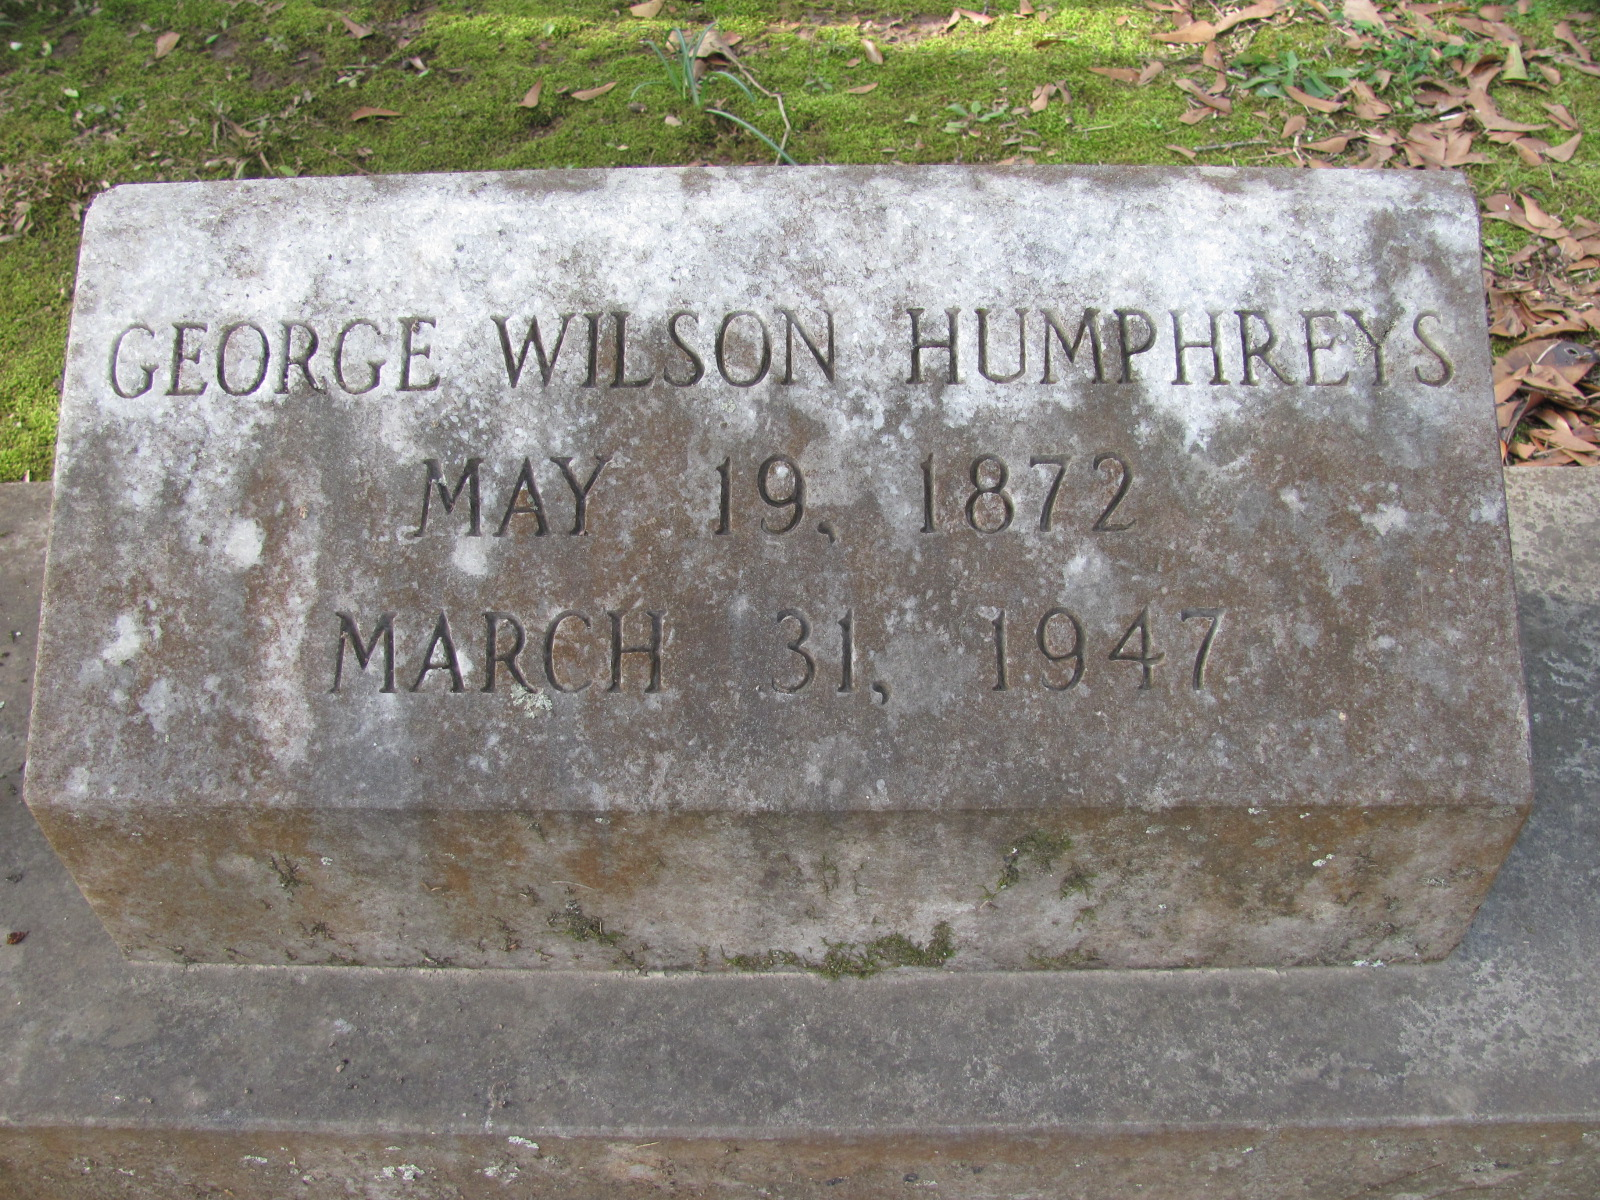 George Wilson Humphreys